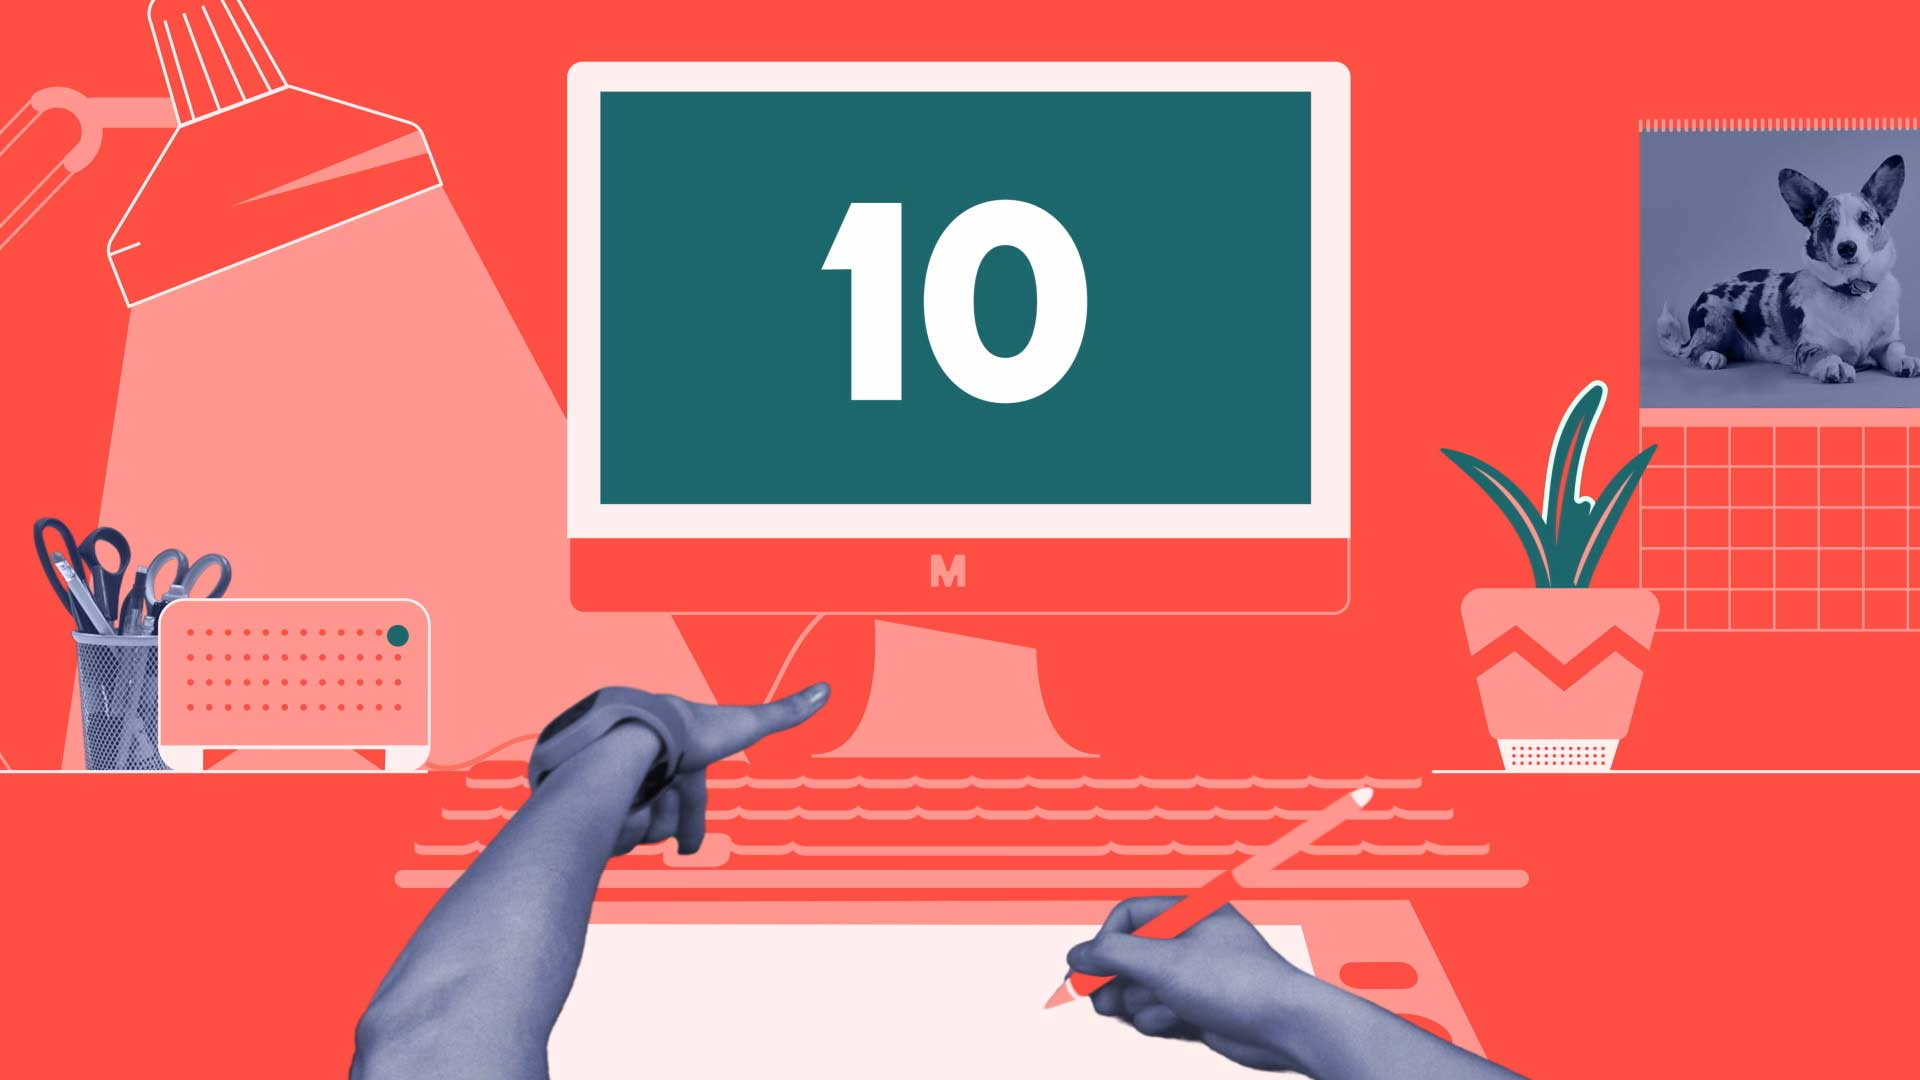 Motionographer – Patreon Campaign